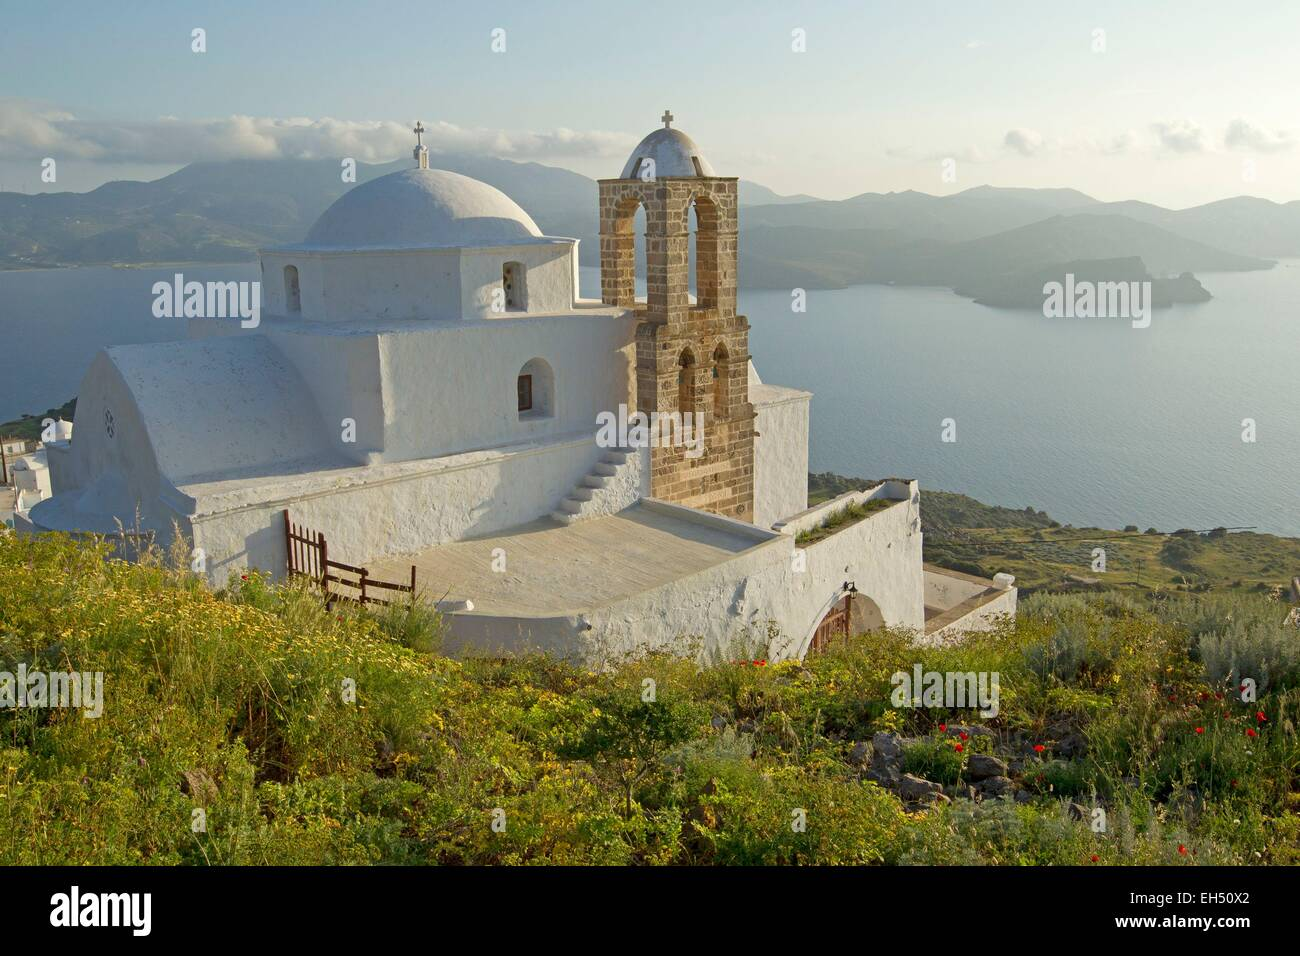 Greece, Cyclades, Island of Milos, Plaka - Stock Image